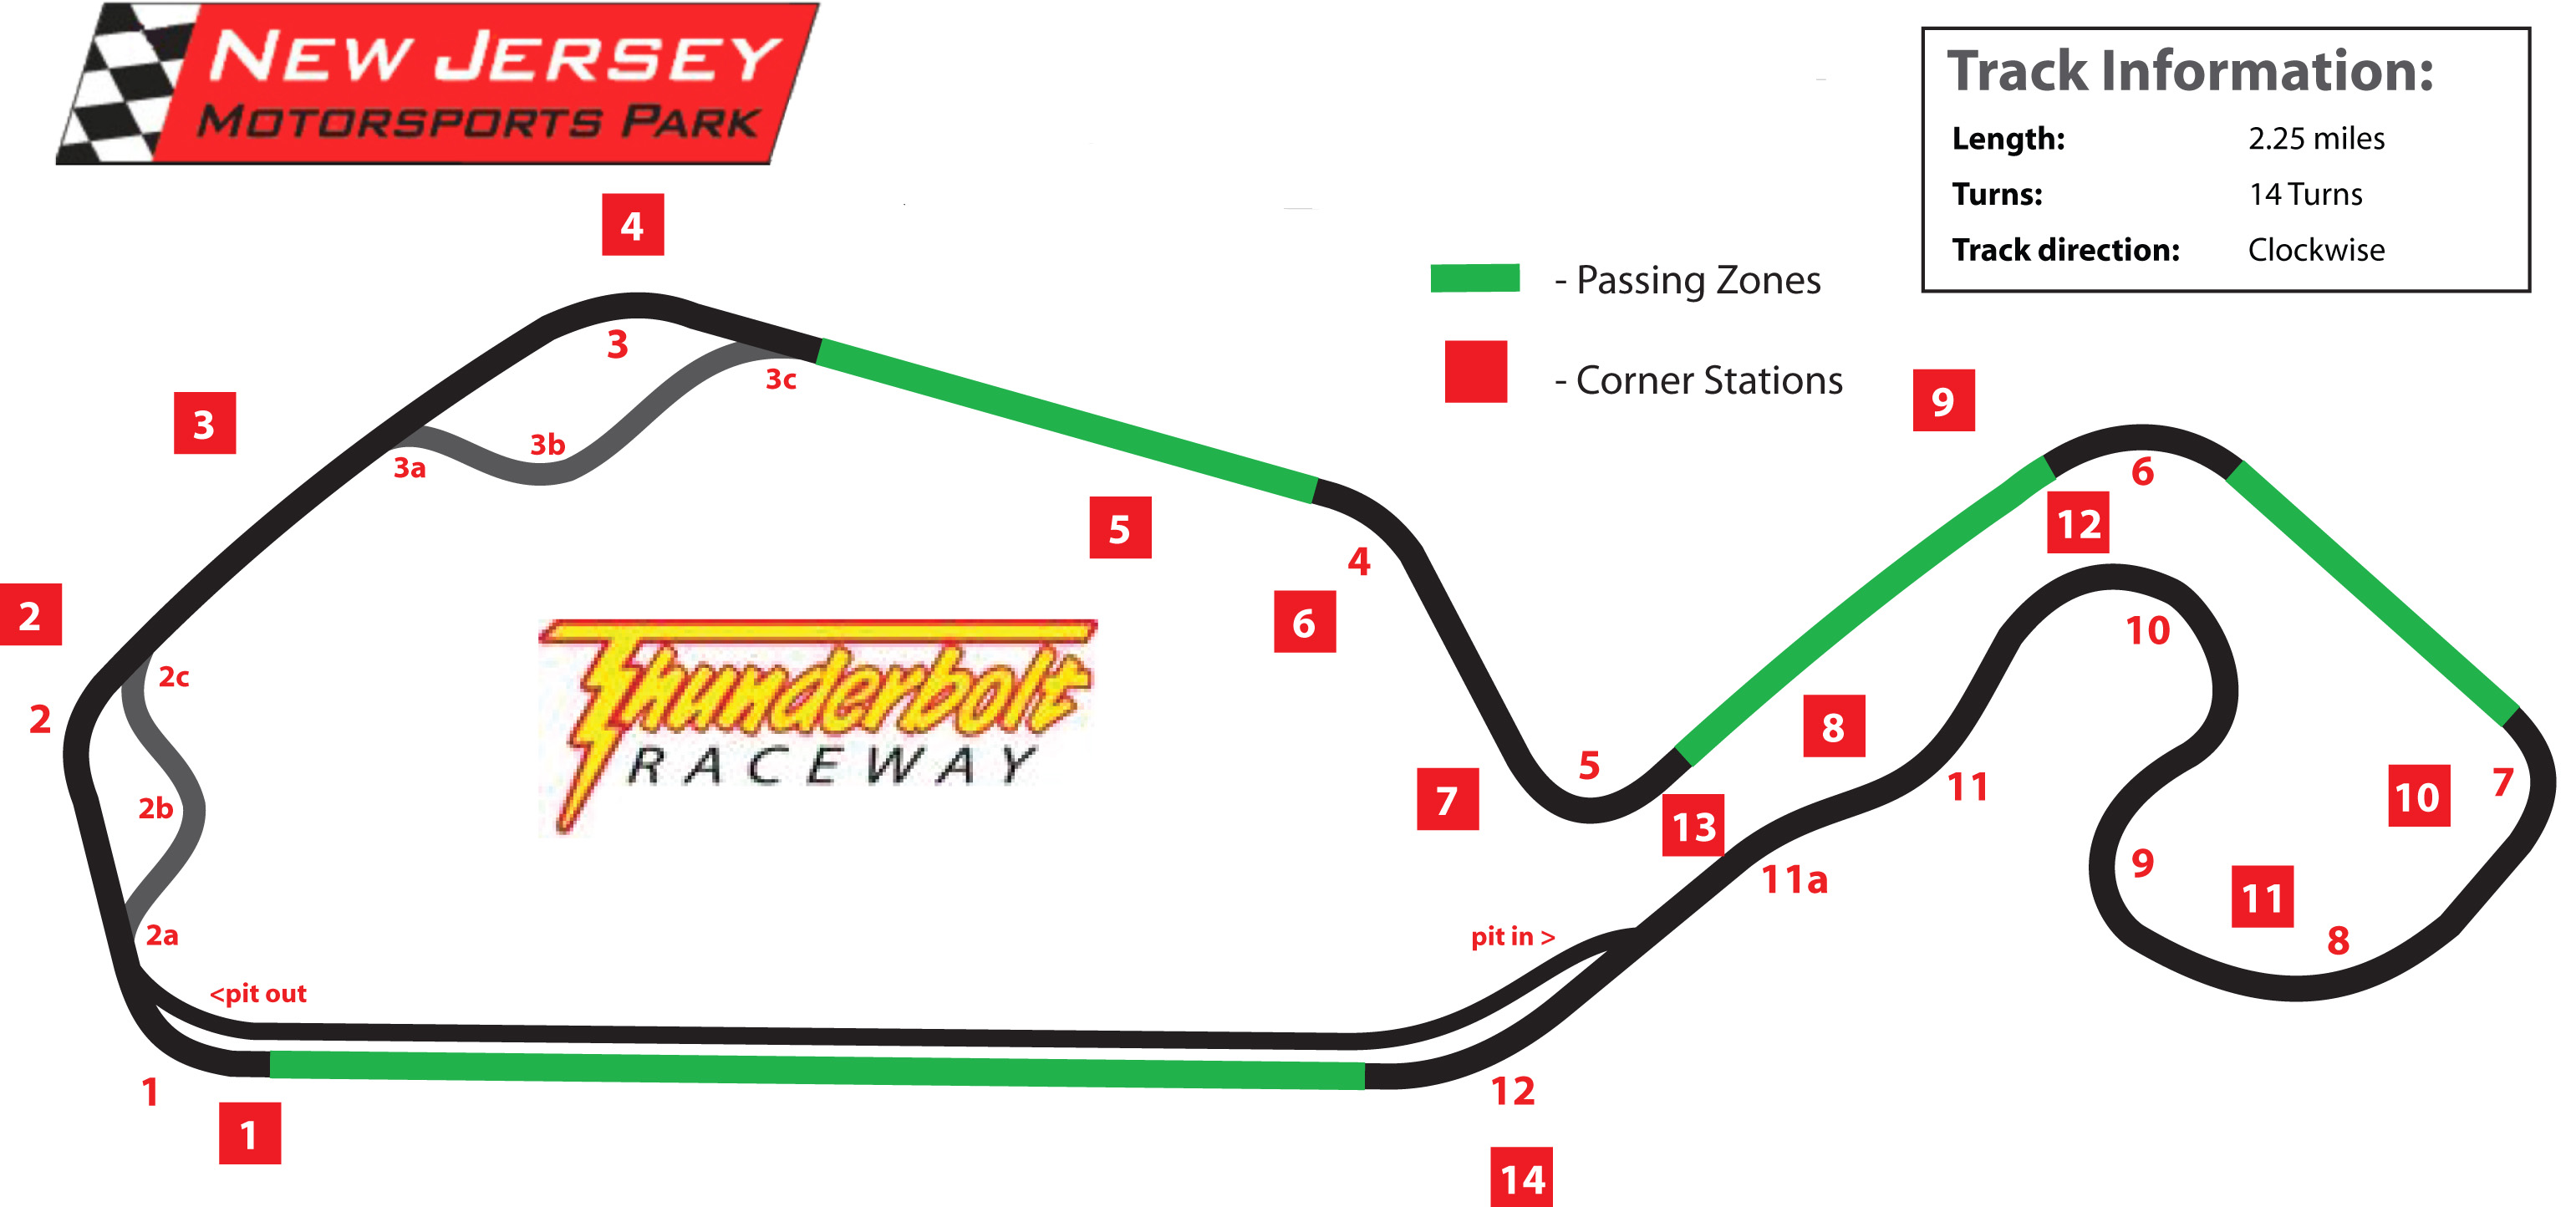 NJMP Thunderbolt logo map